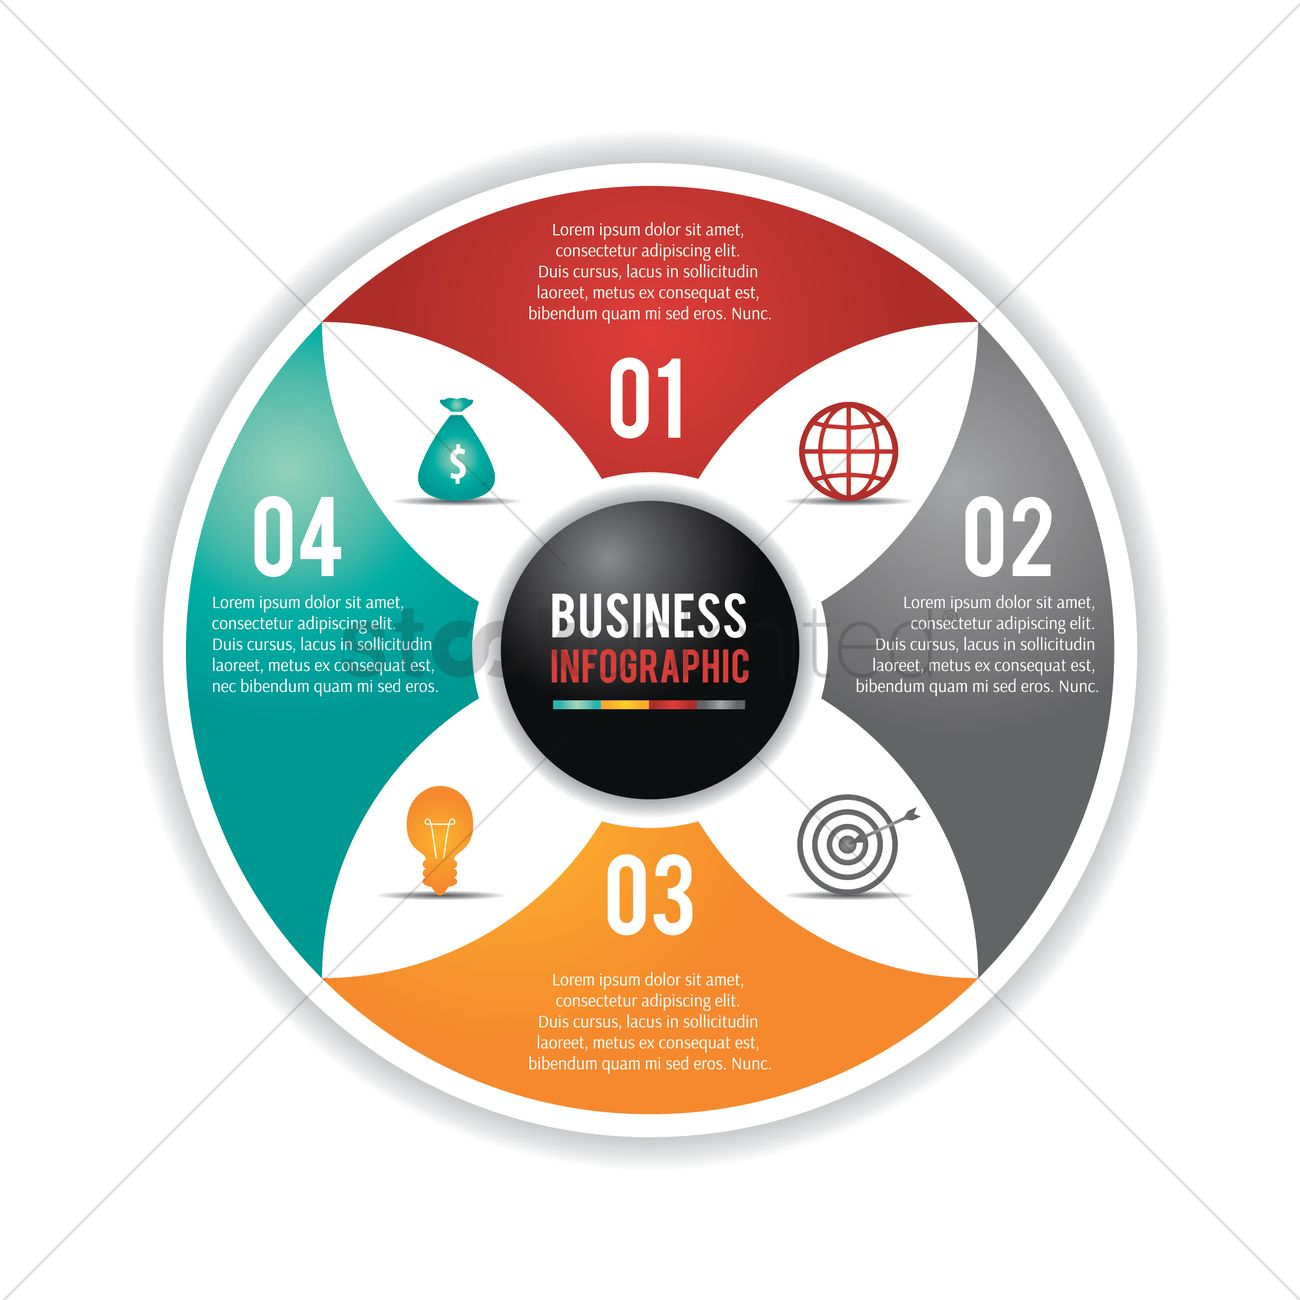 Circle Infographic Flowchart Vector Image 1990595 Stockunlimited